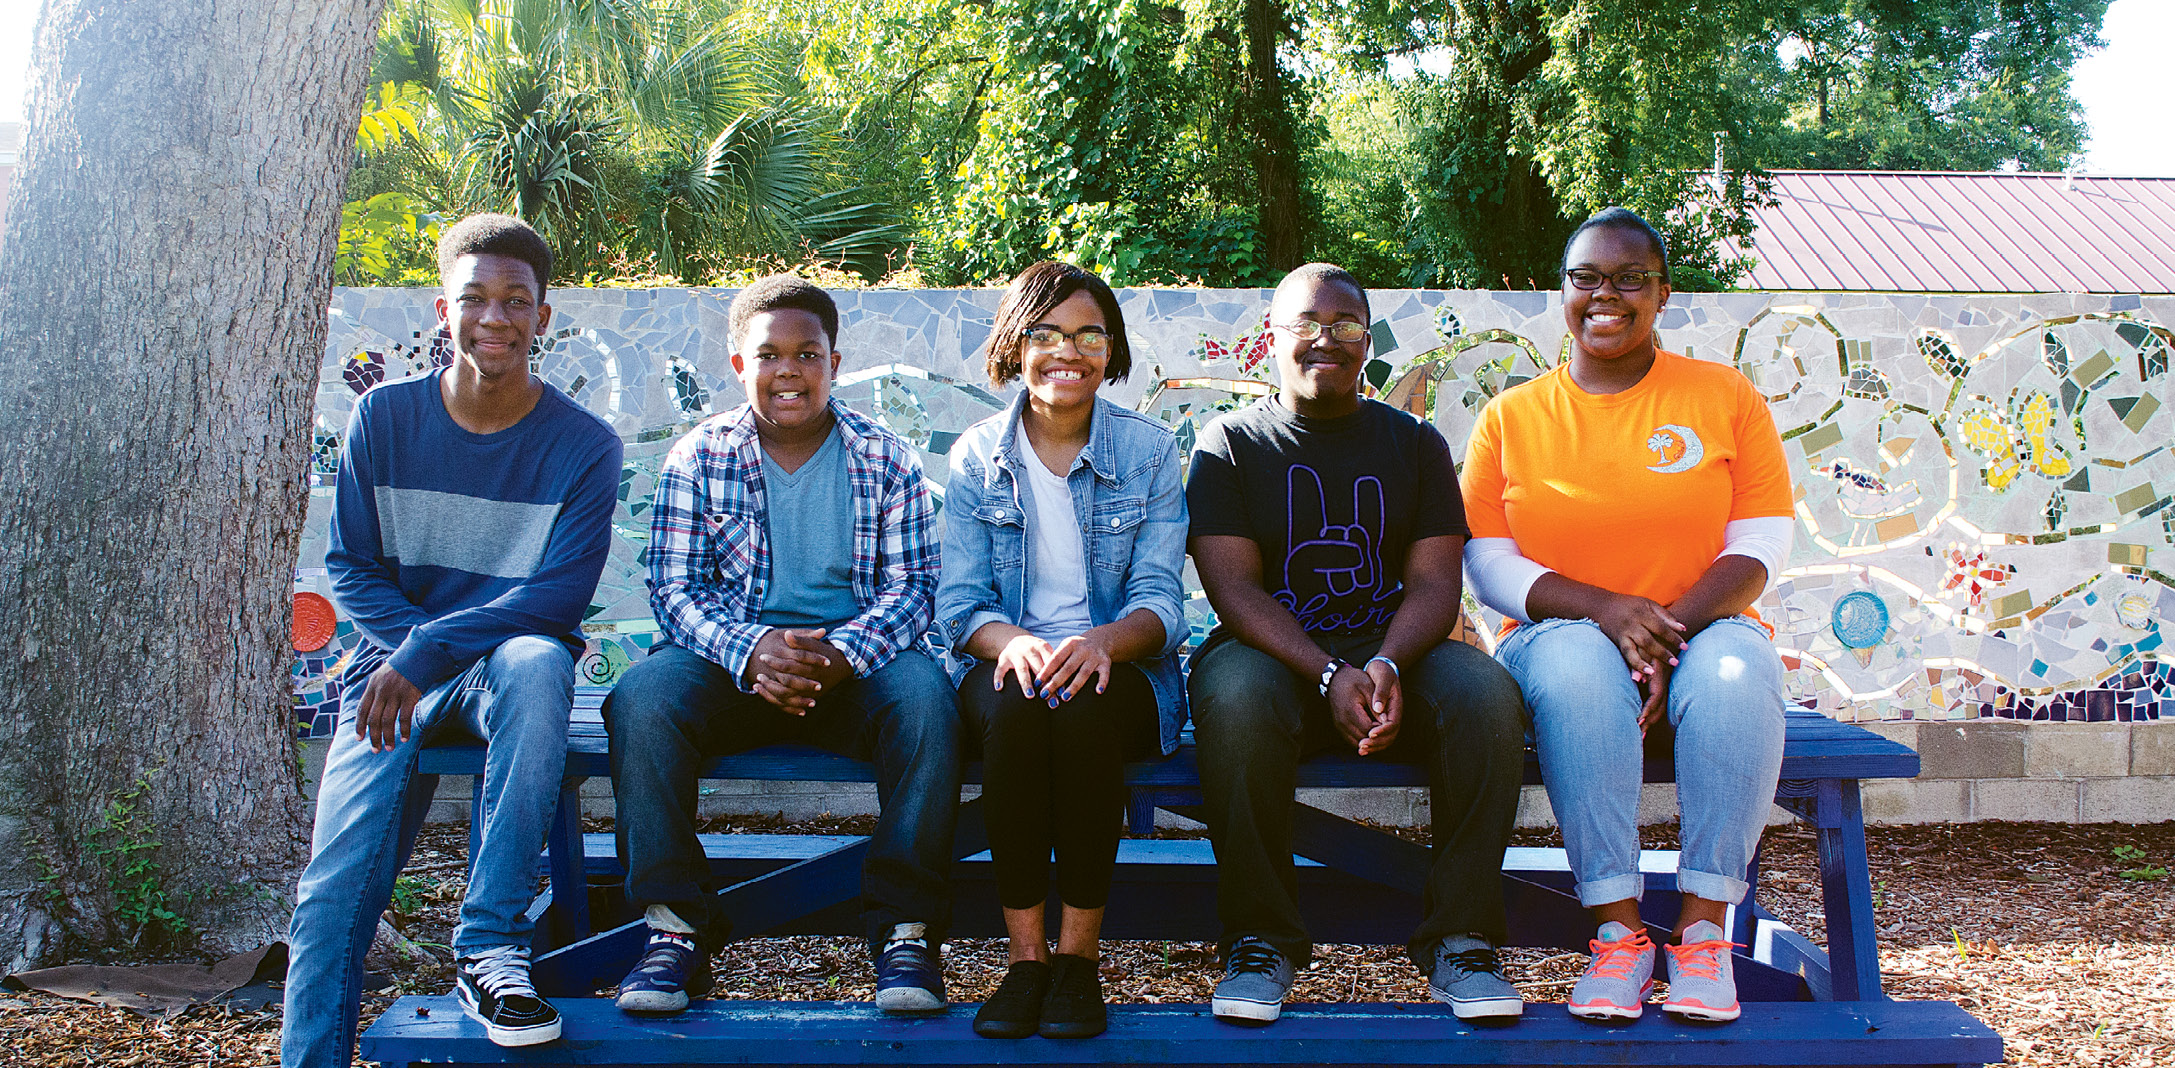 Robert Pickering III, Knicholas Pickering, Brianna Stanley, Chandler Threatt, and Reagan Pickering are among the teens who tend the downtown garden.